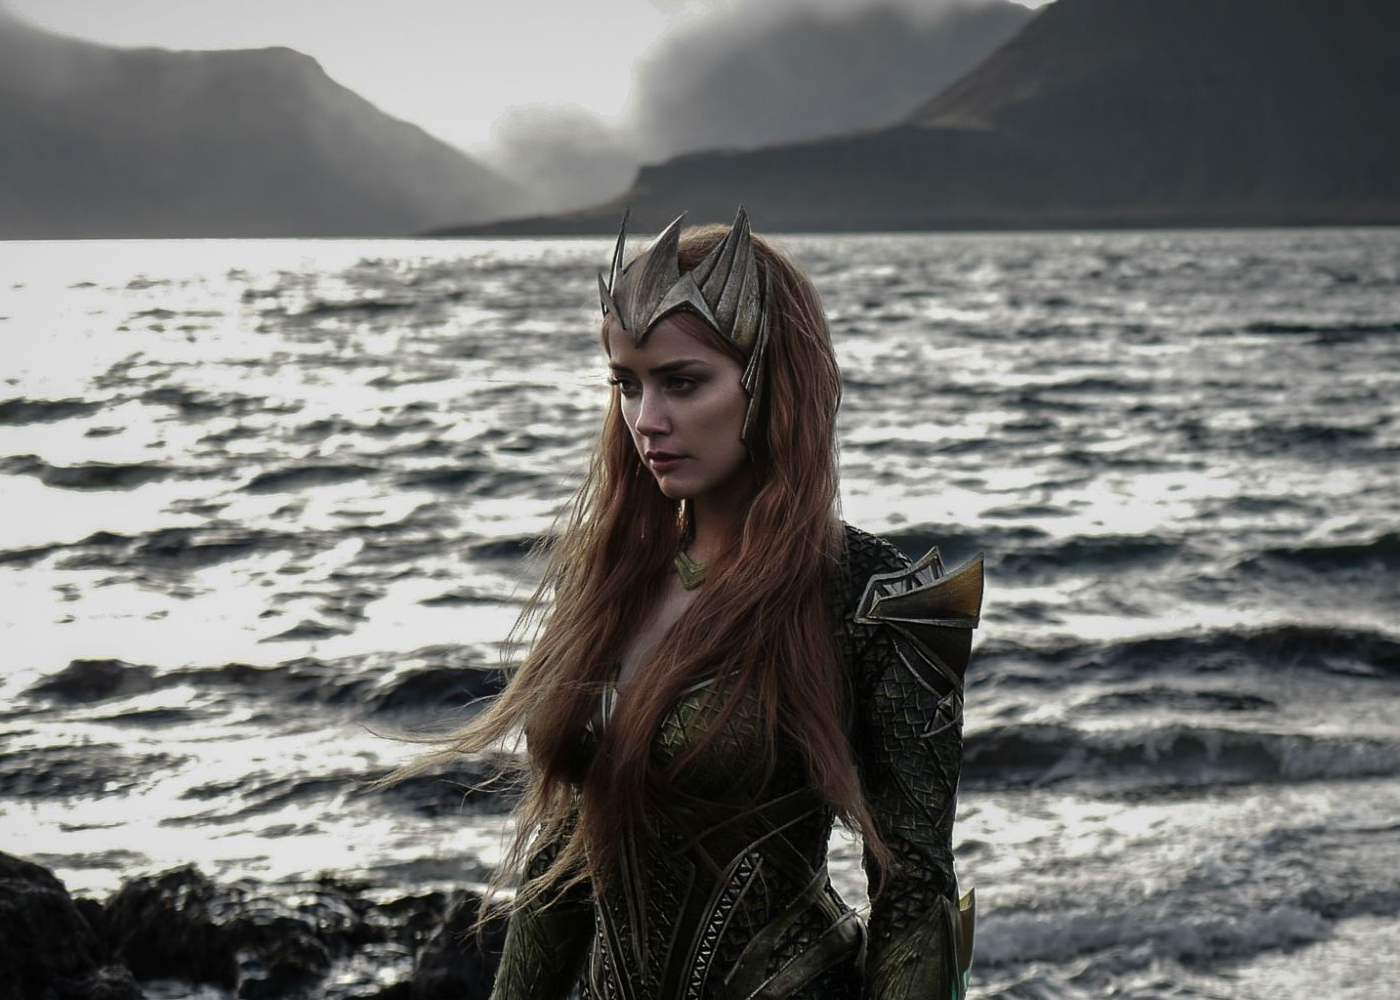 Look: Amber Heard in New Mera Costume on Aquaman Set